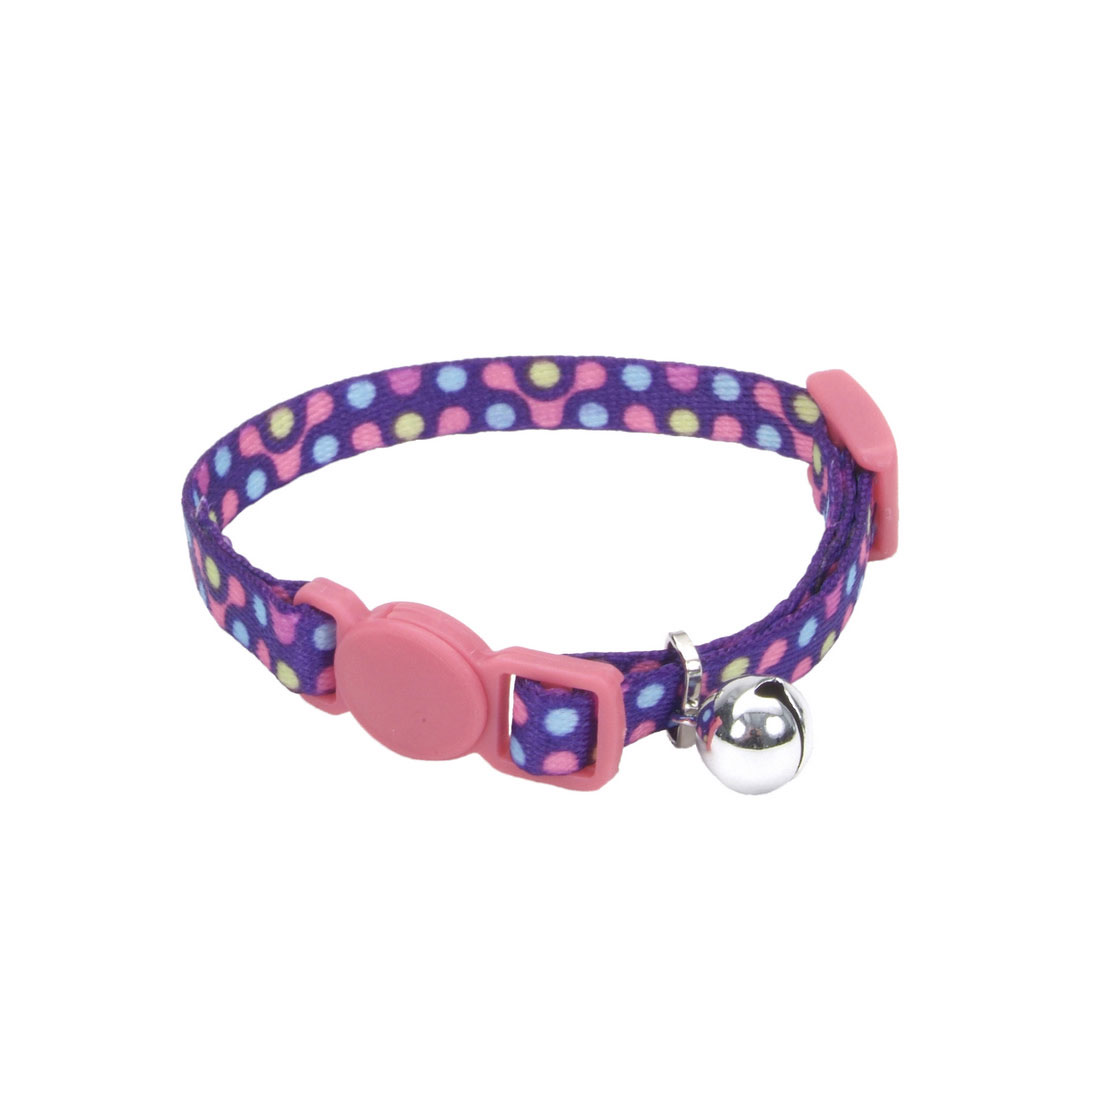 Coastal Pet Li'l Pals Adjustable Breakaway Kitten Collar, Purple Gear, 5/16-in